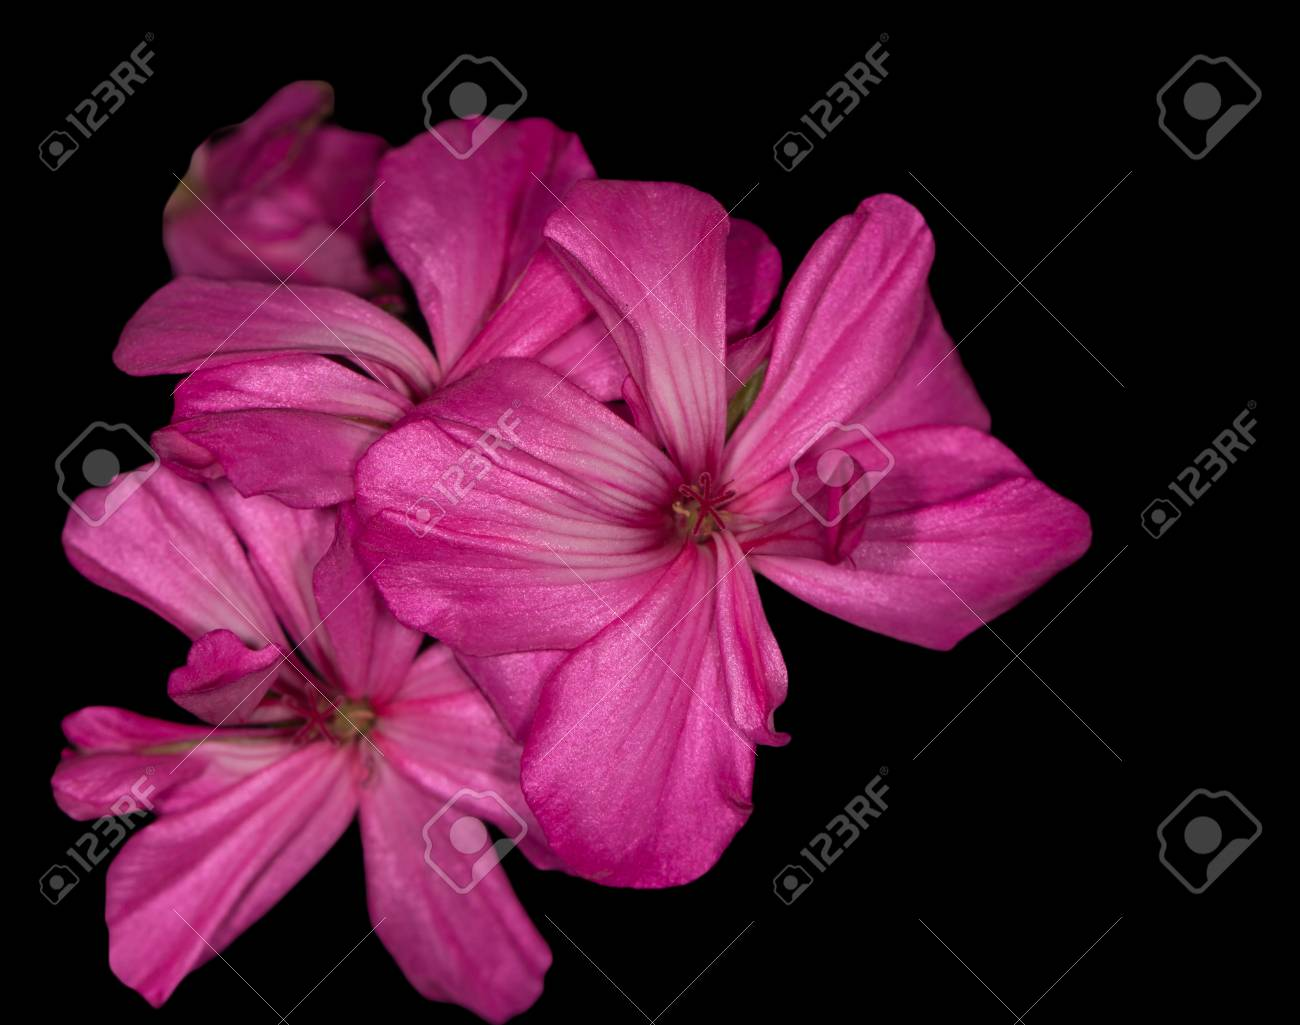 Pink Geranium Flower On A Black Background Stock Photo Picture And